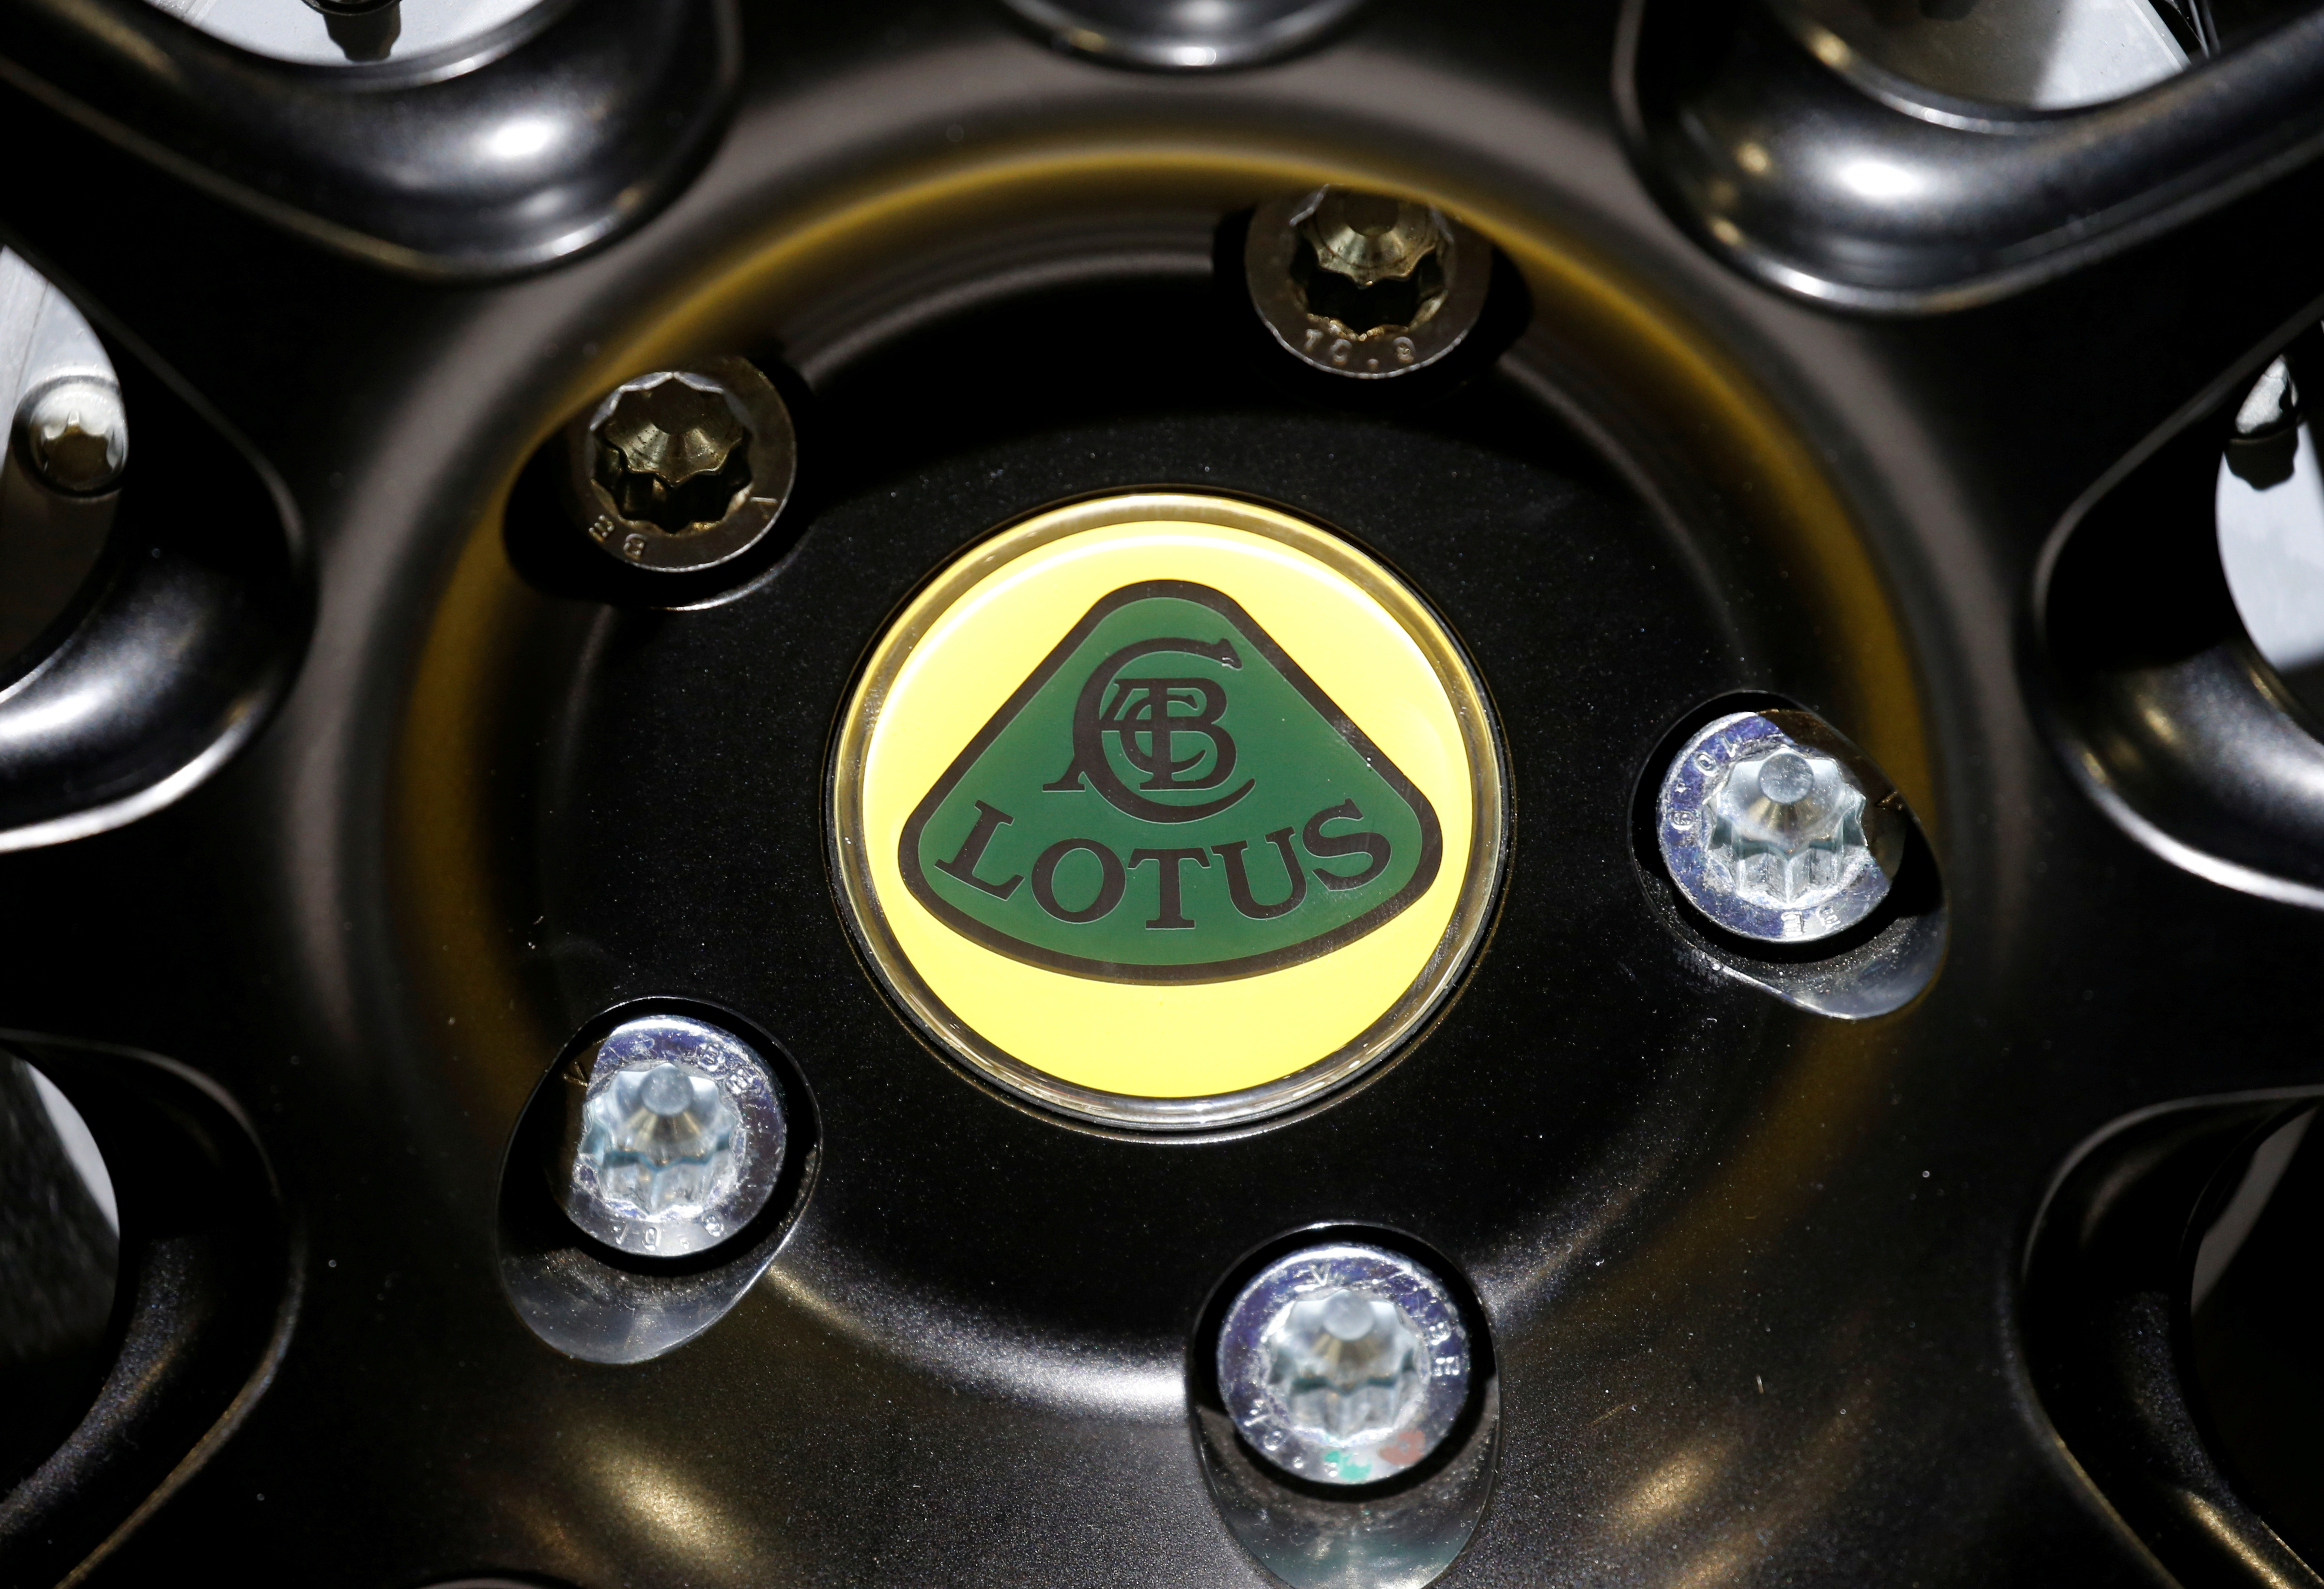 The Lotus logo is seen during the first press day of the Paris auto show, in Paris, France, October 2, 2018. REUTERS/Regis Duvignau